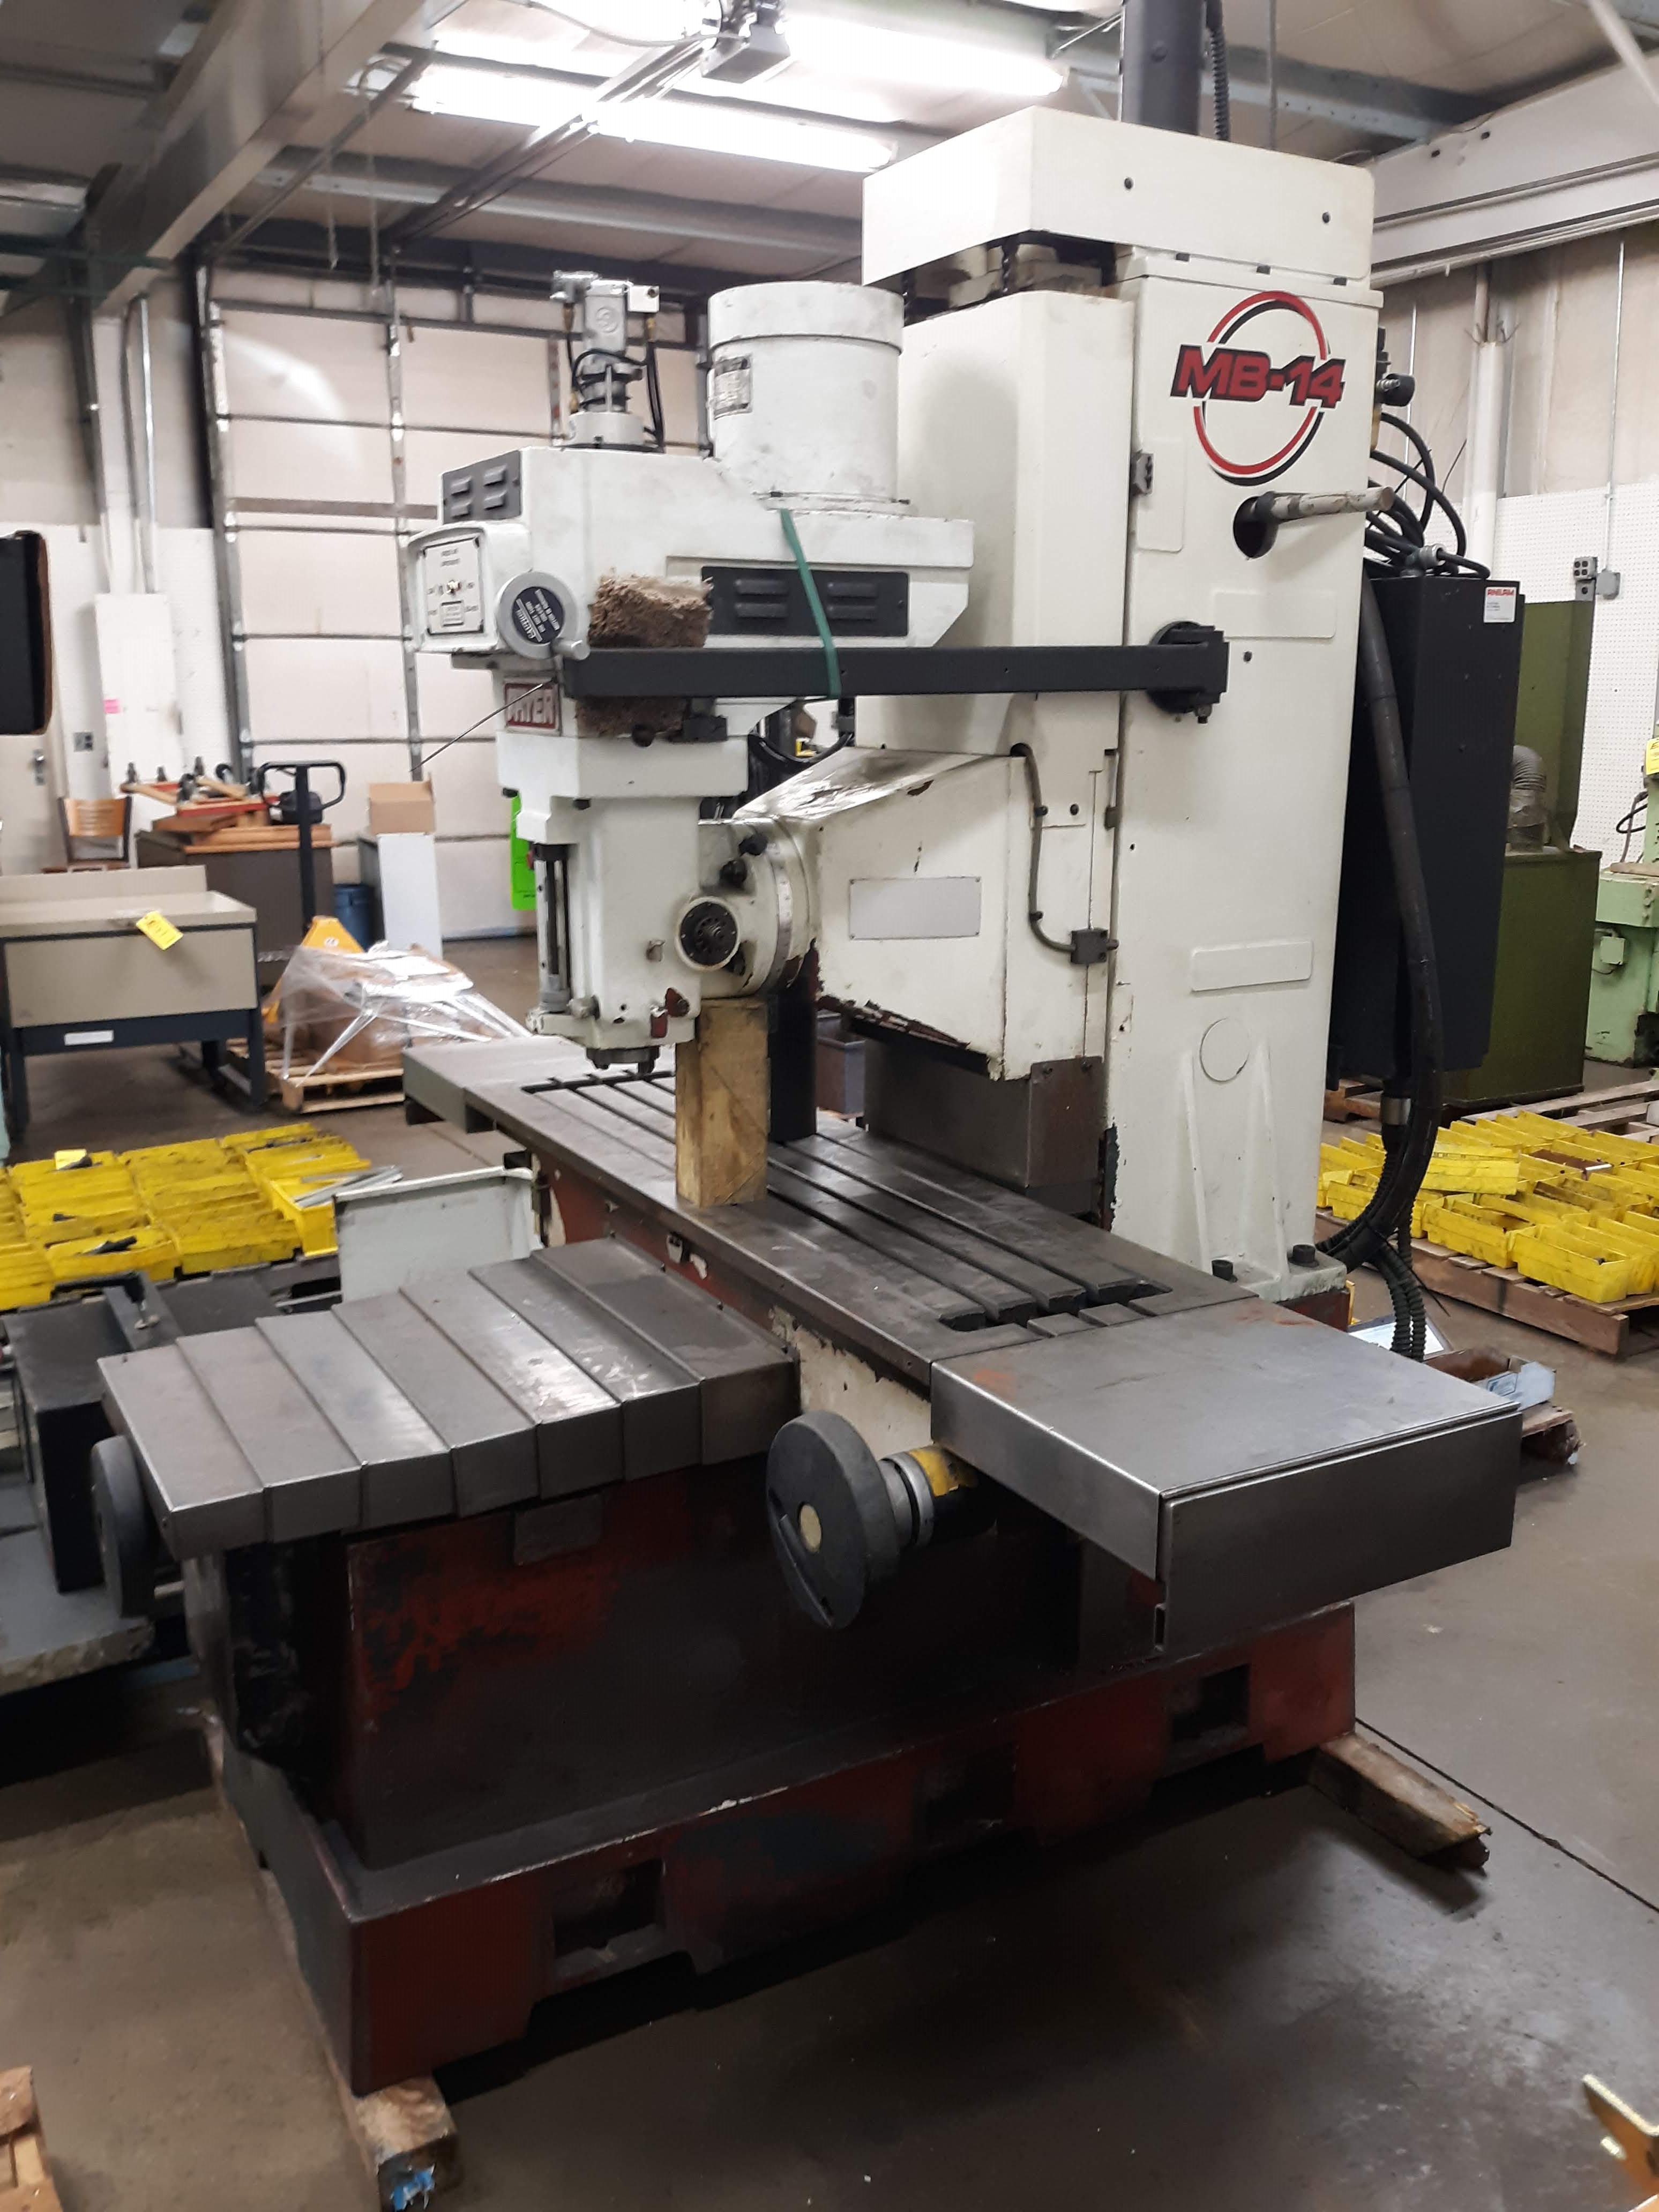 FRYER CNC MILLING MACHINE MODEL-MB-14 S#14247 54 X 16 TABLE ANILAM 3300 MK DRO (LOCATED AT: 432 - Image 4 of 8